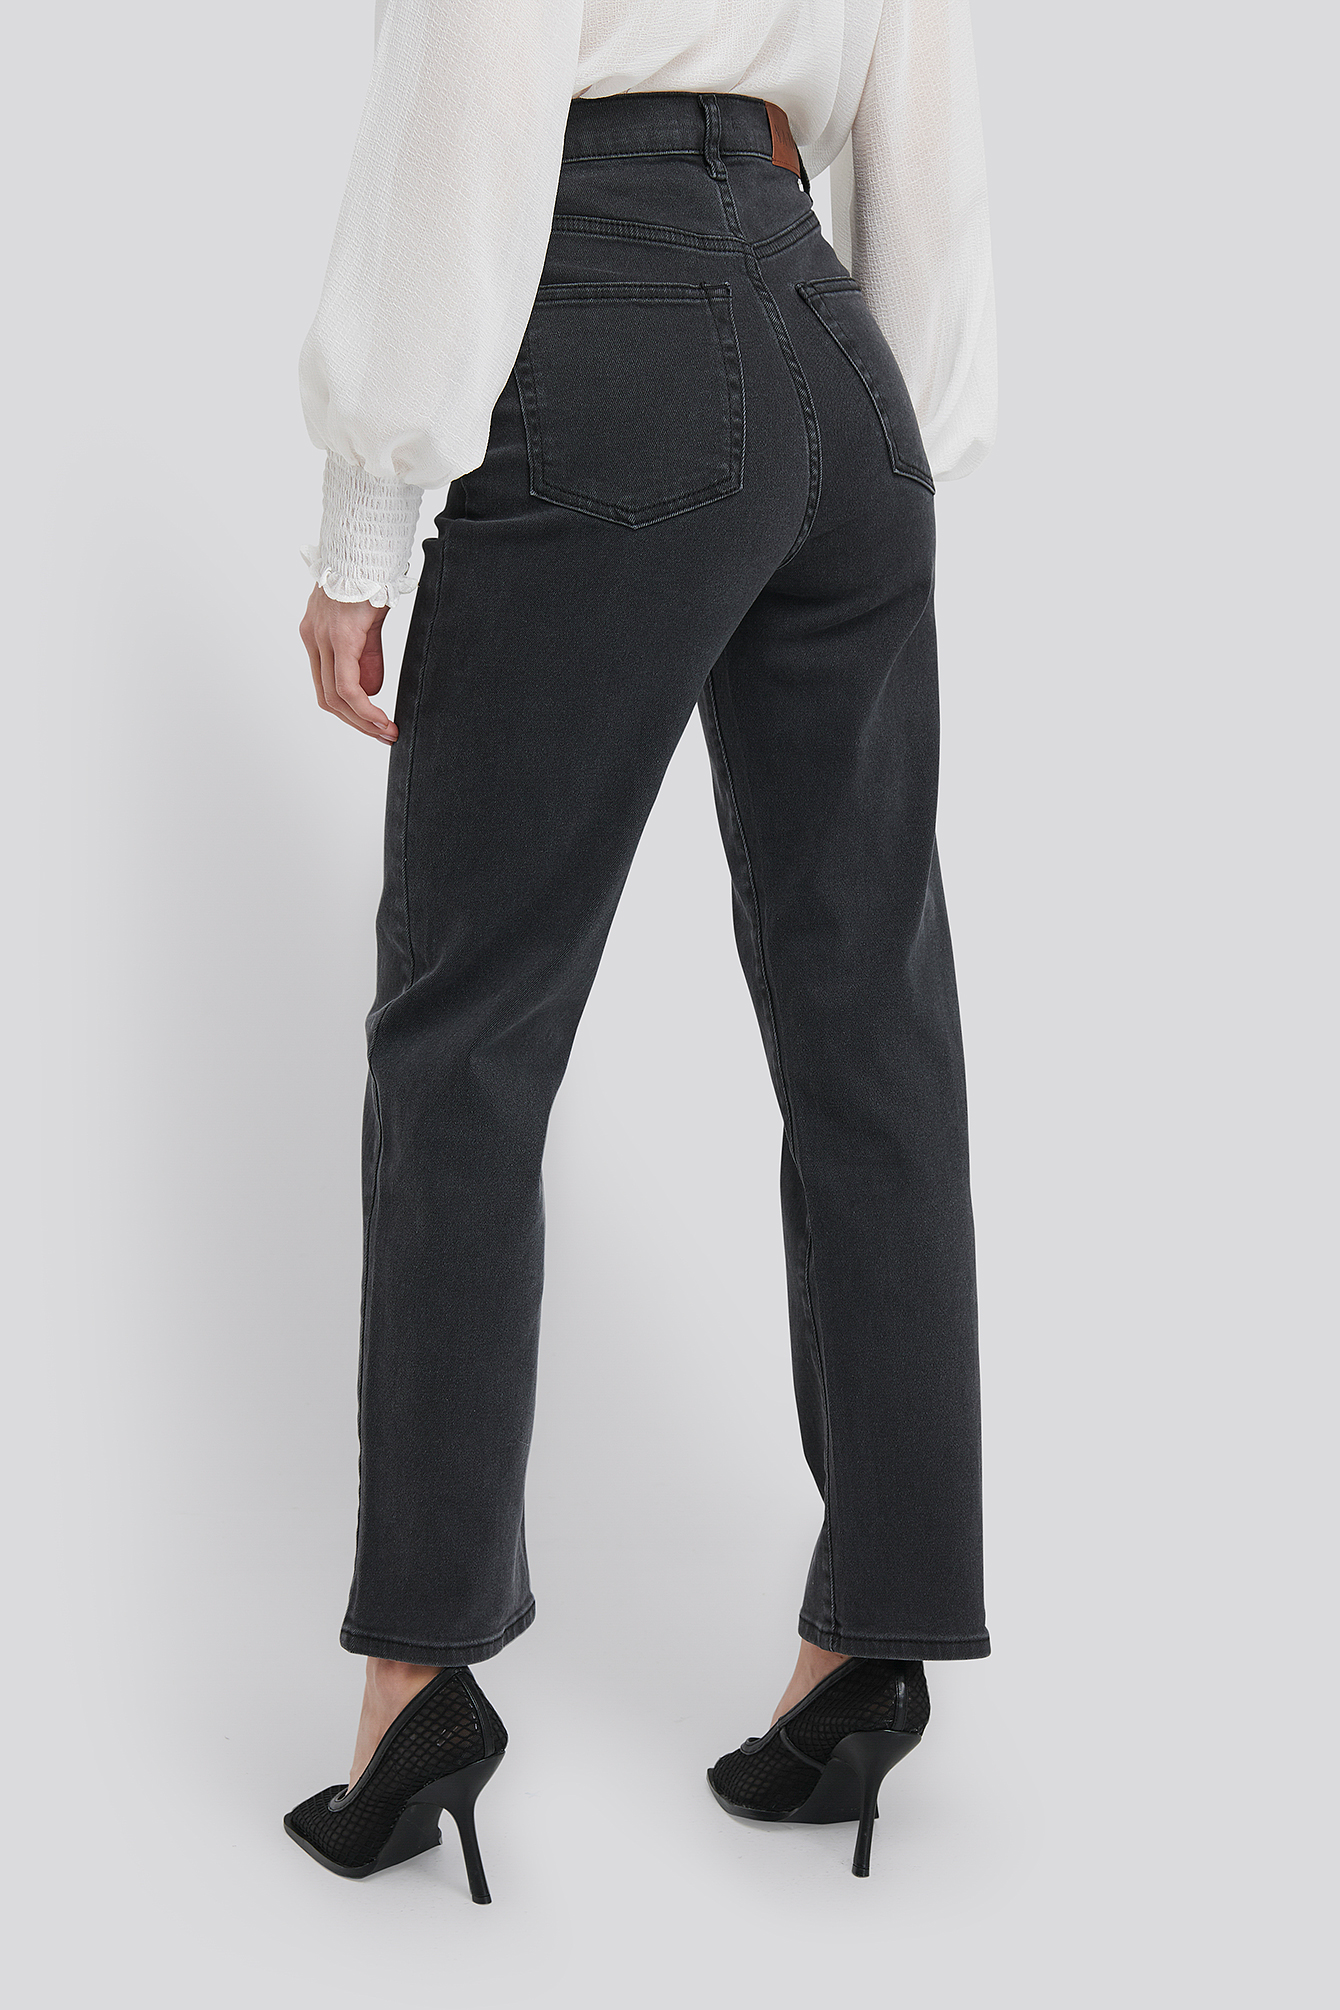 Dark Grey Straight High Waist Jeans